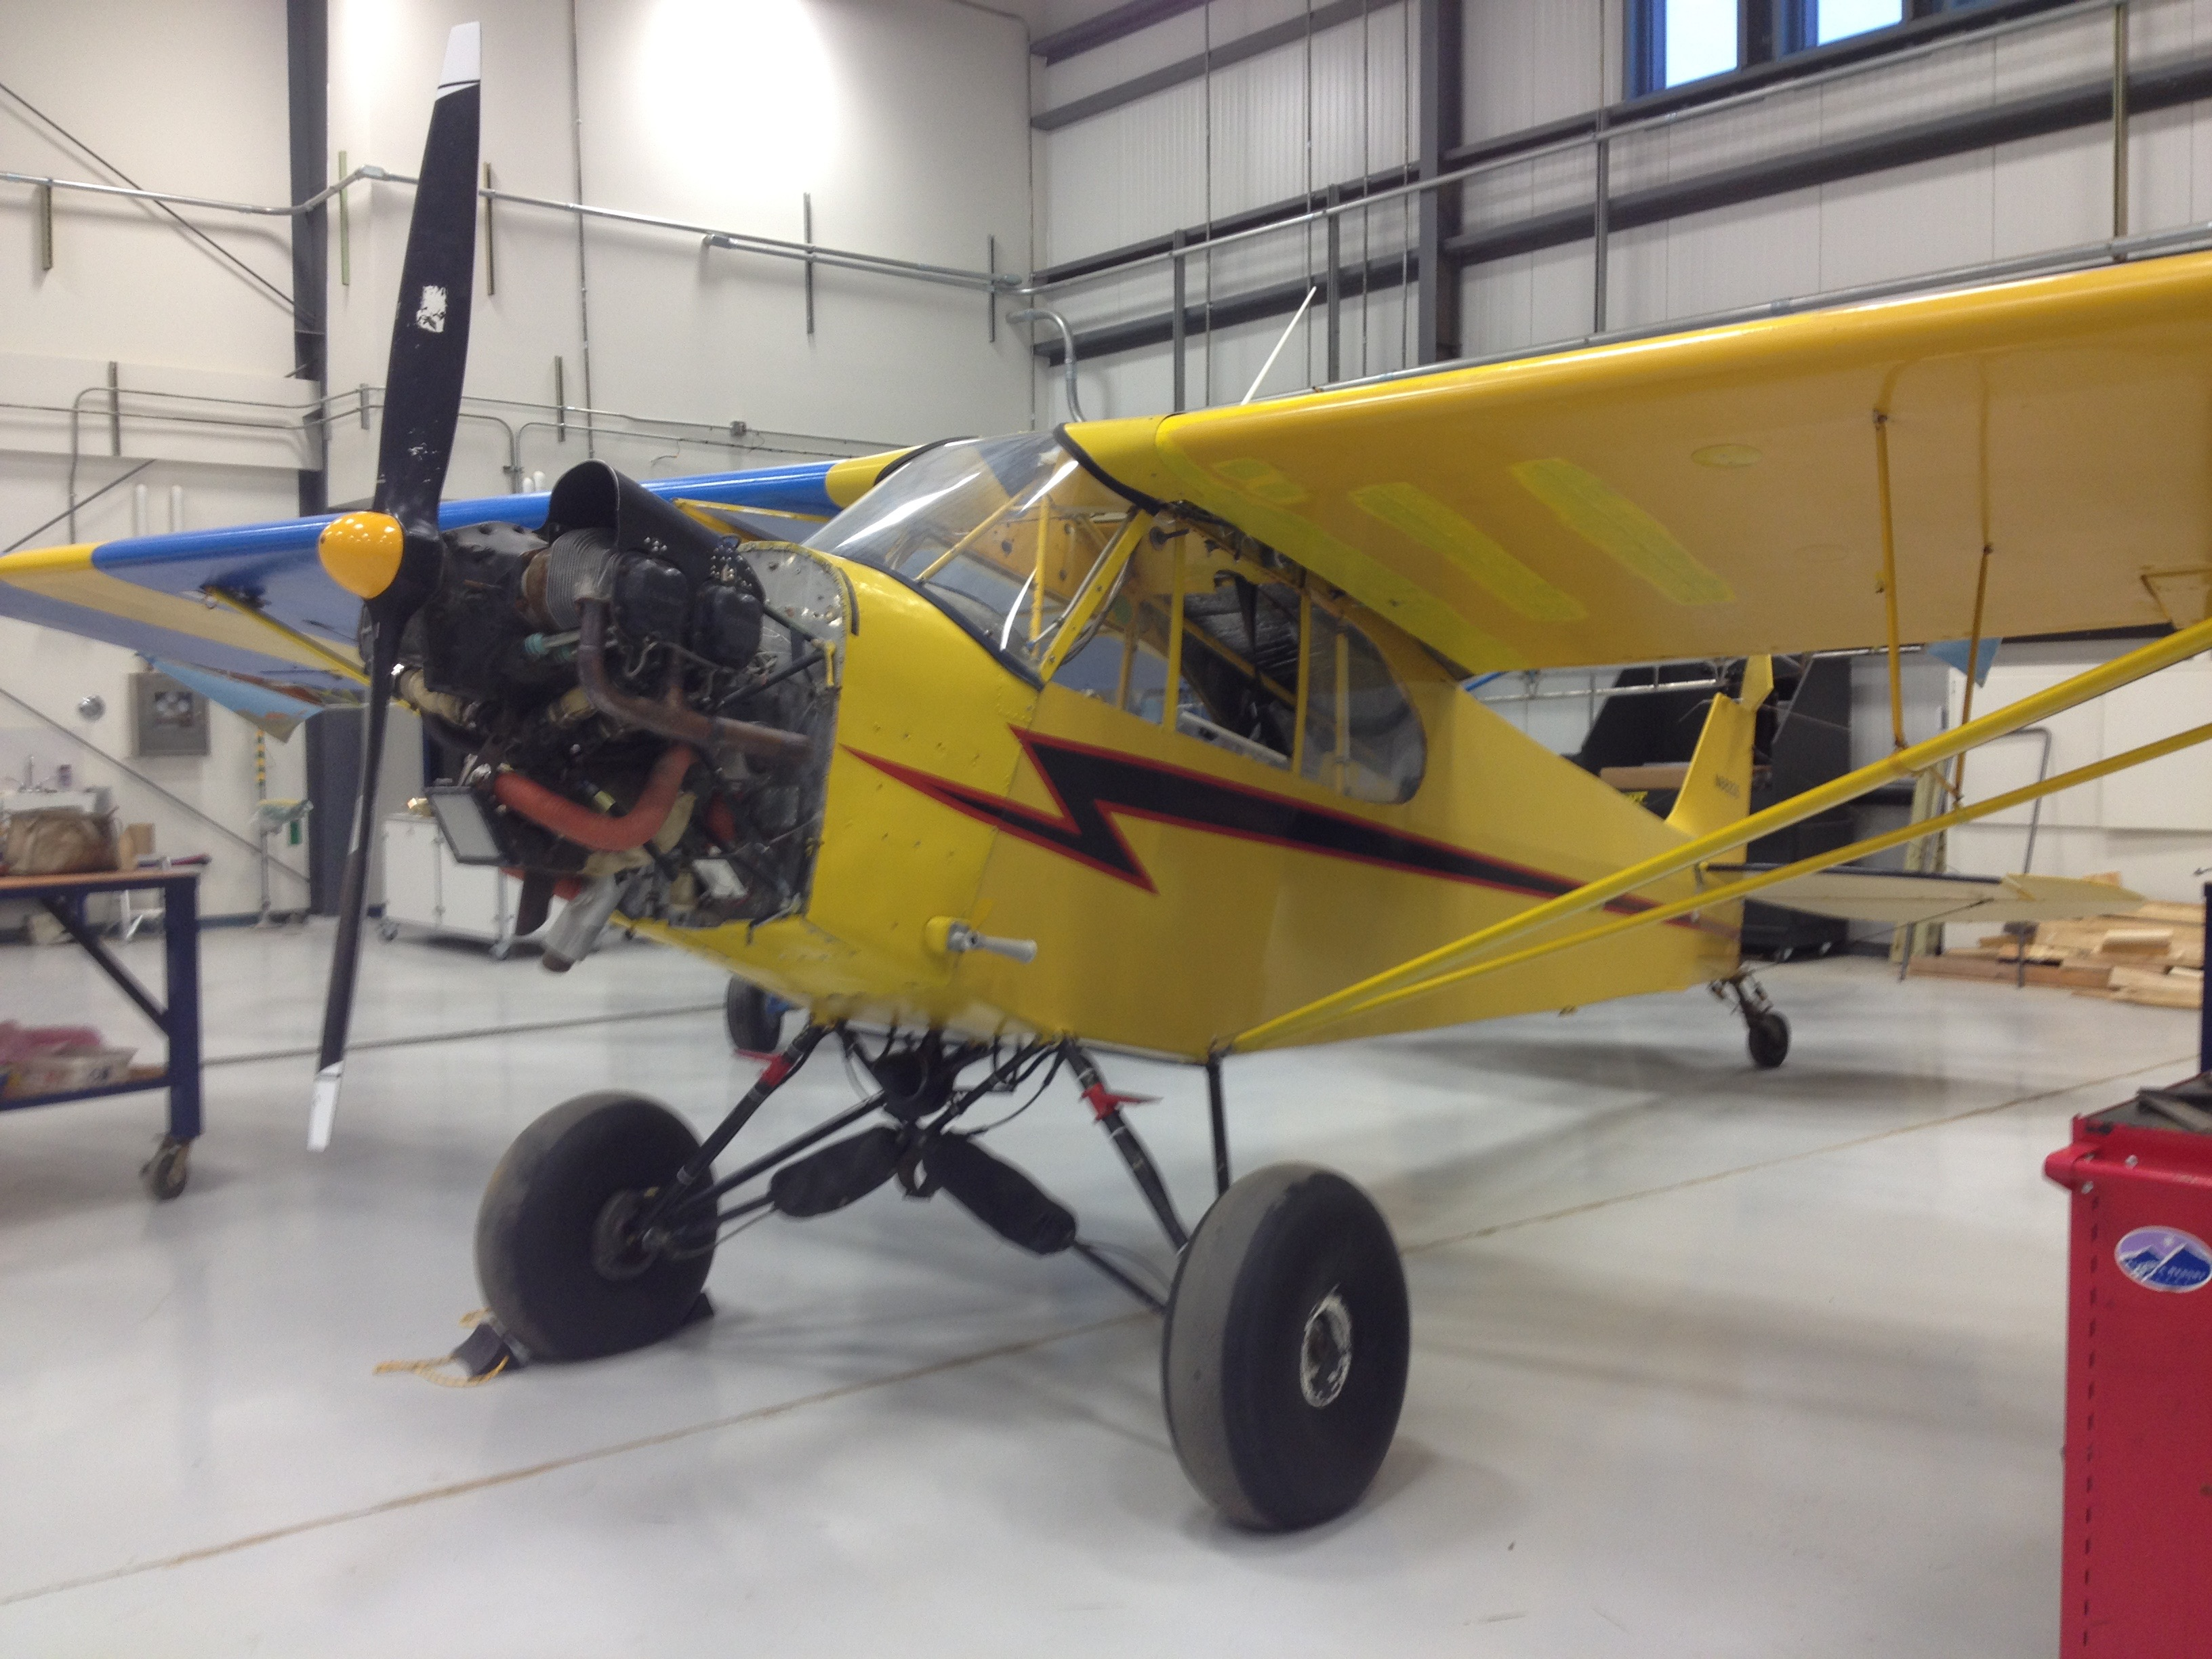 Aircraft Mechanic subjects in college to study